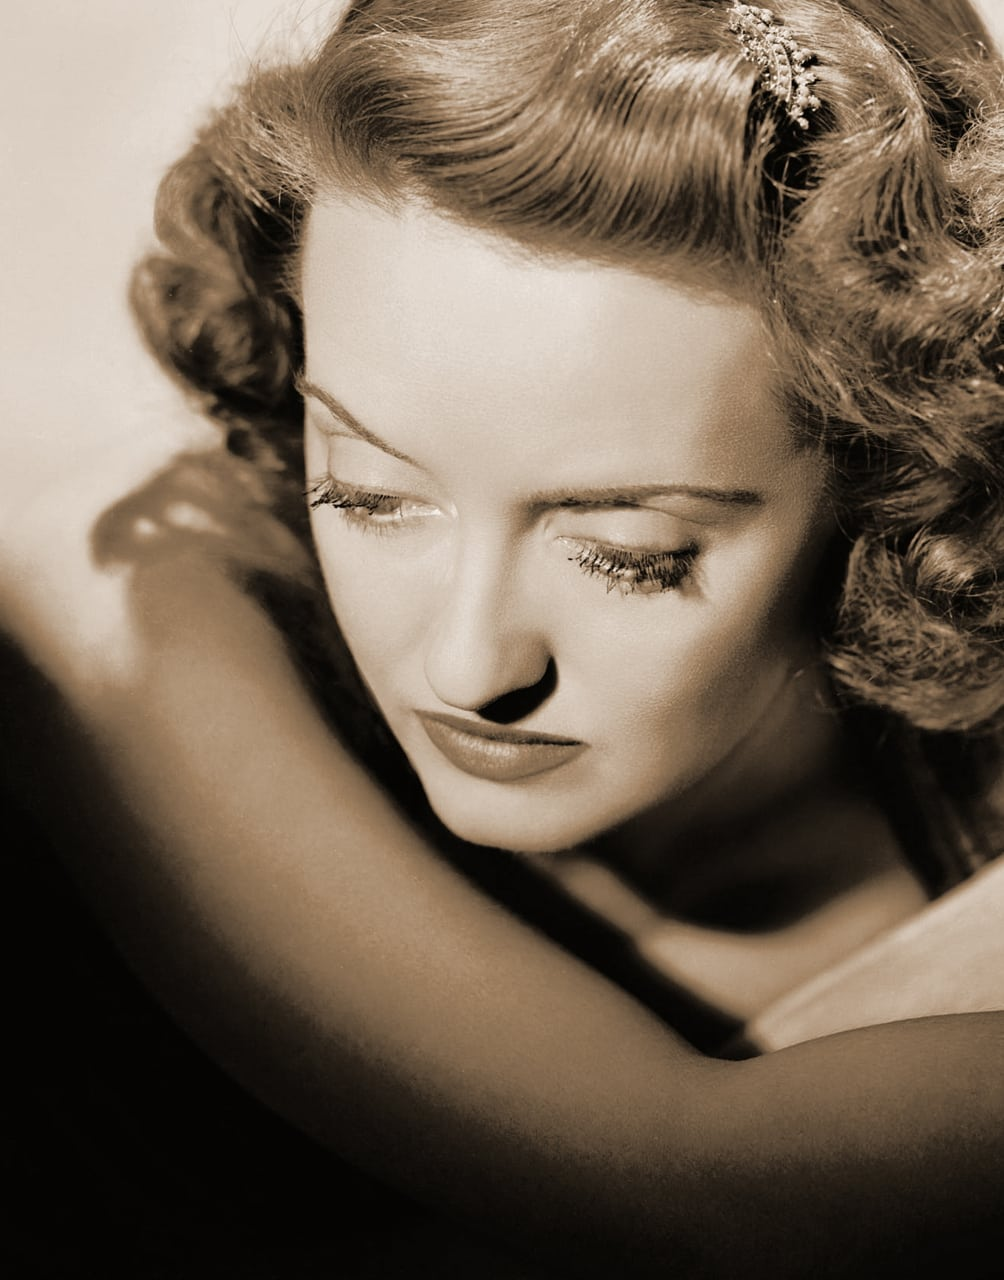 Free Gifs and Animations - Background Images Bette davis influence fashion